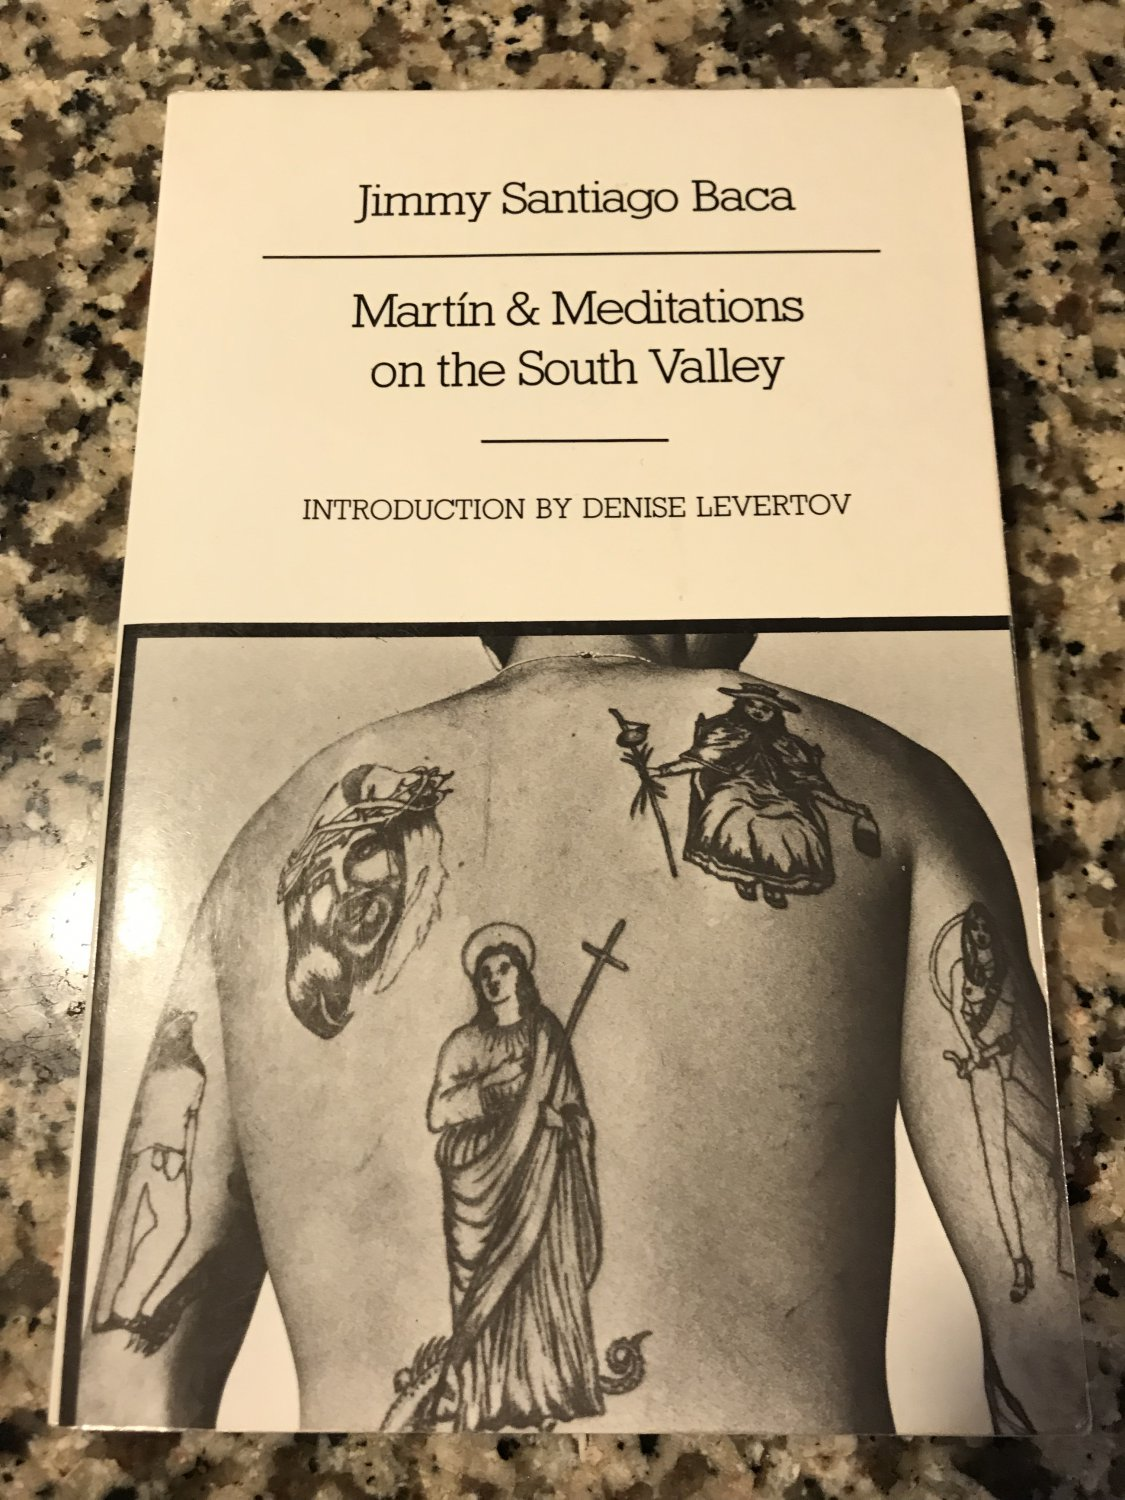 Martín and Meditations on the South Valley: Poems [paperback] Baca, Jimmy Santiago [1987]